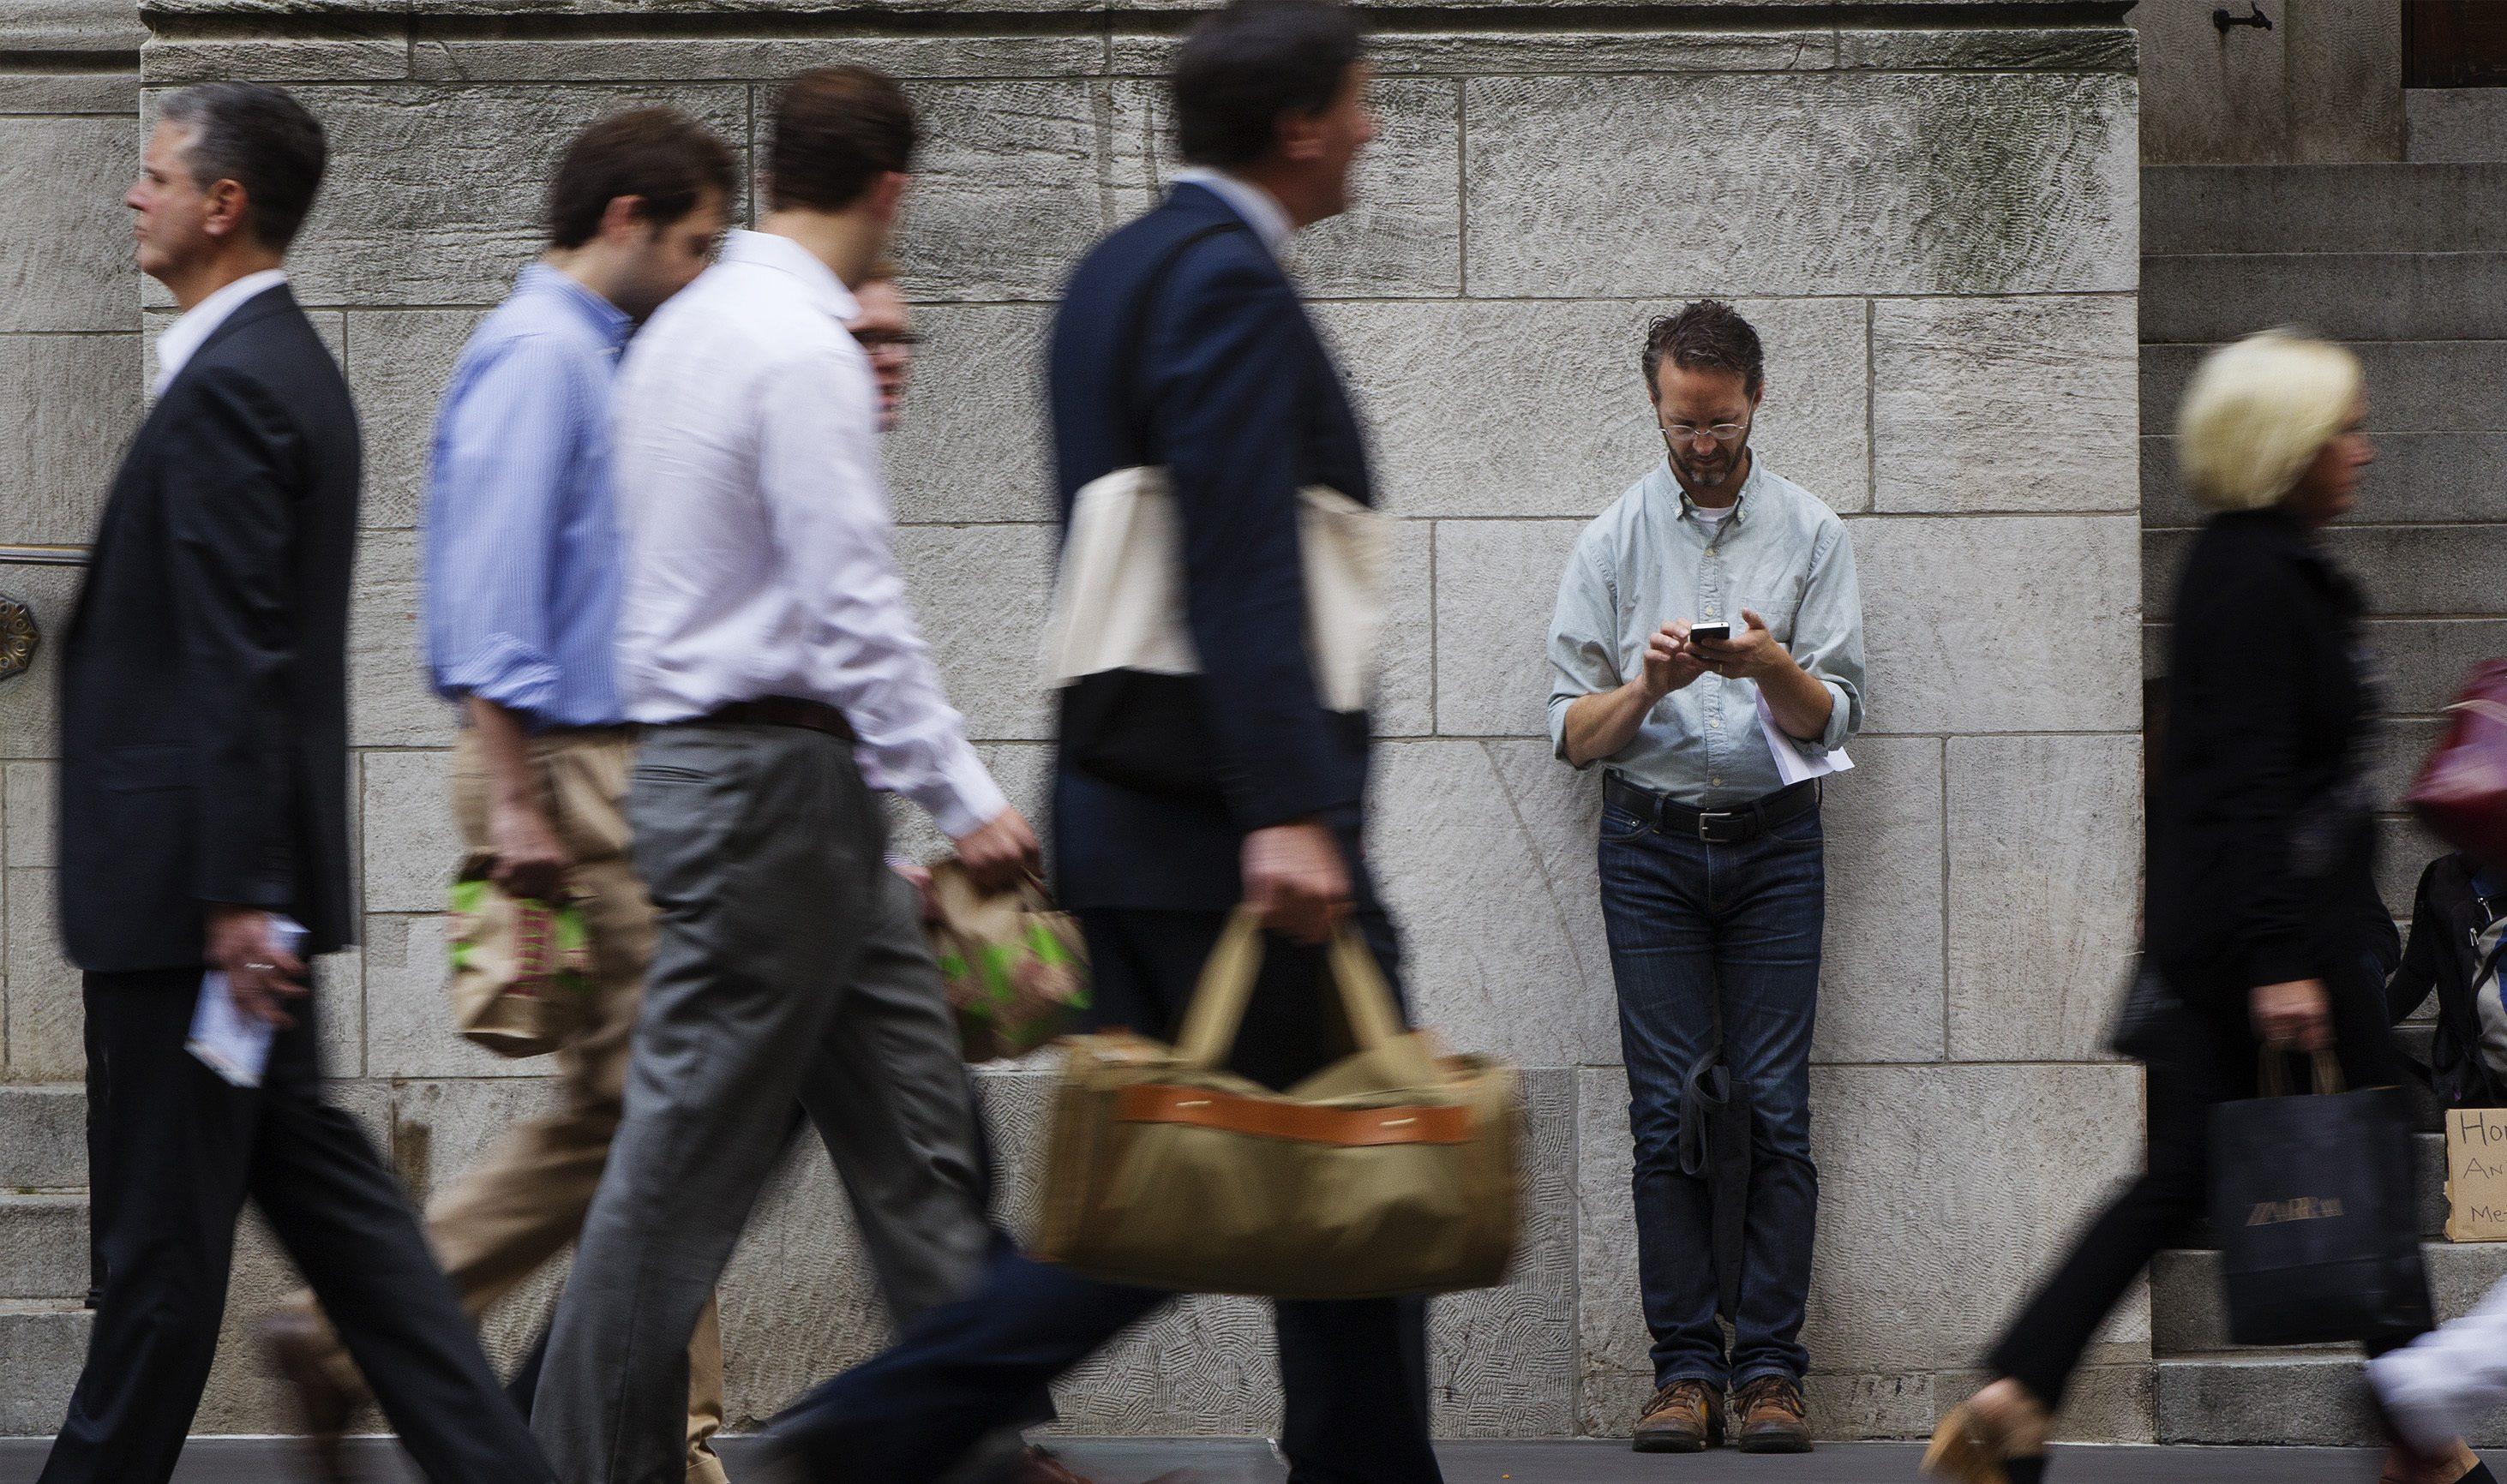 A man stops to lean against a building as pedestrians walk past while he looks down at his Apple iPhone on 5th Avenue in New York, September 20, 2012.